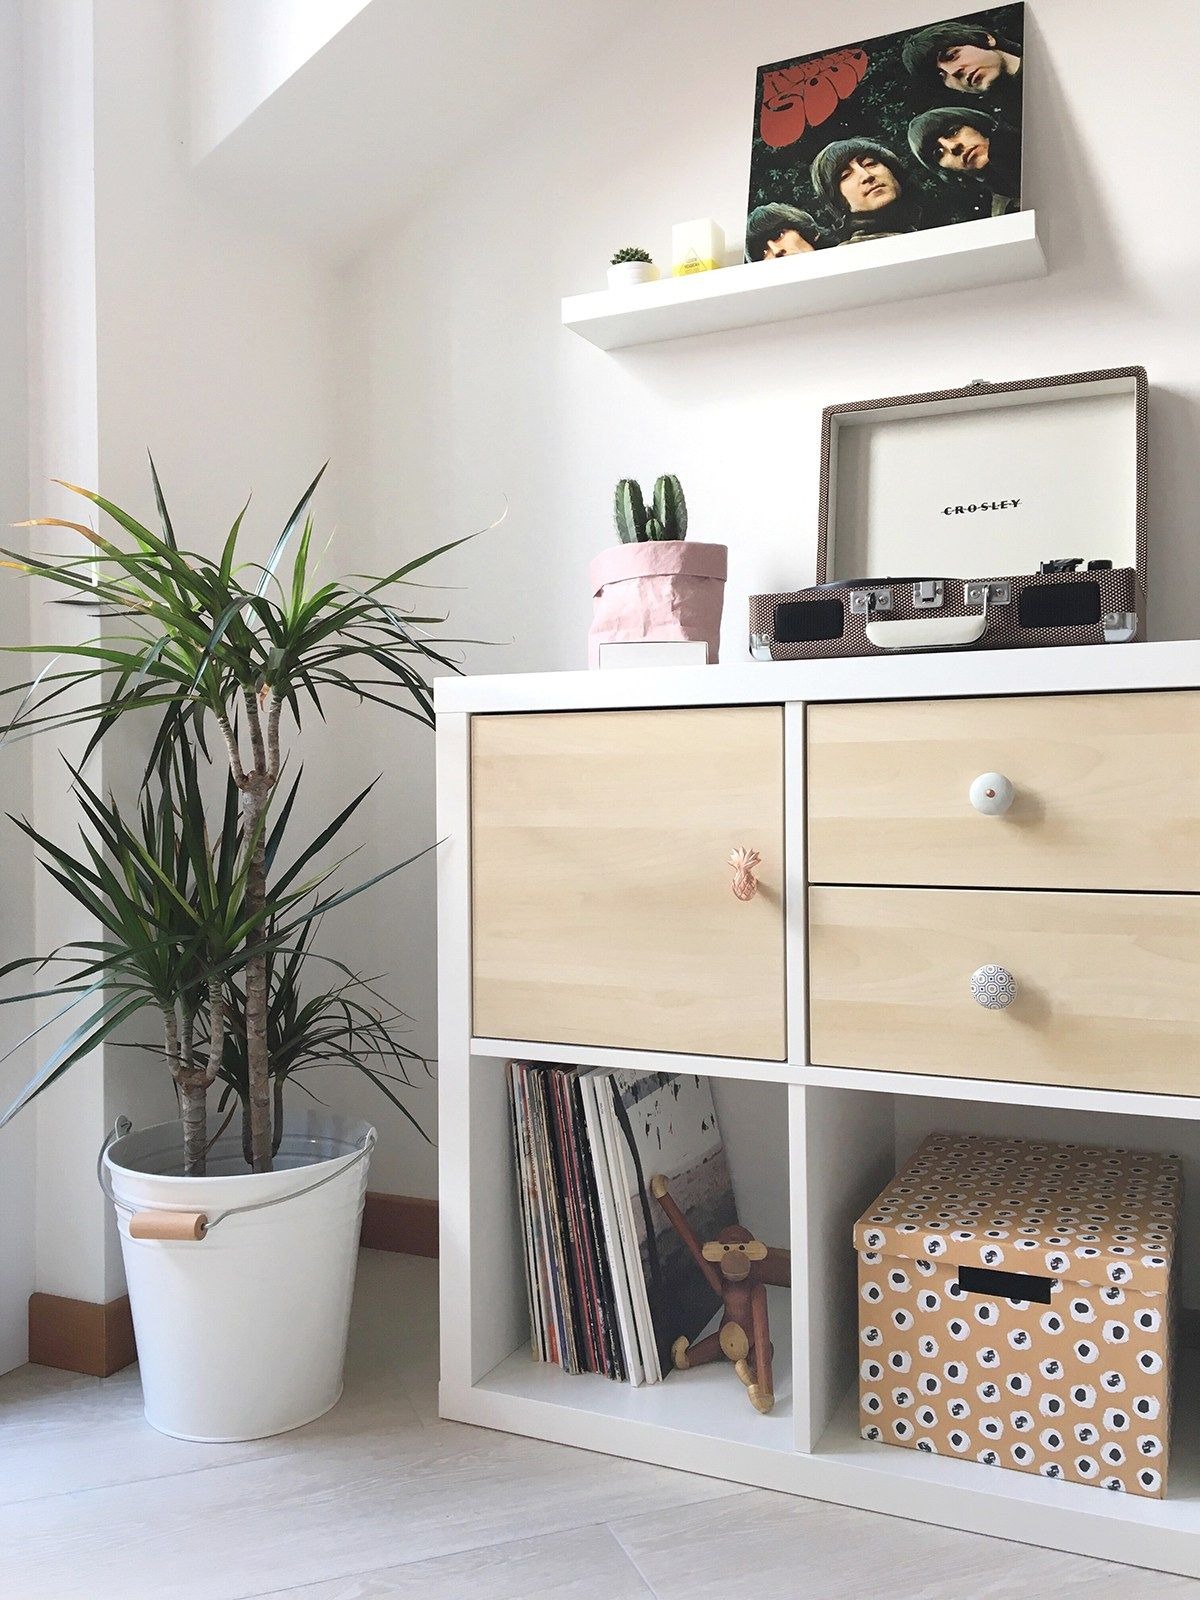 Diy how i customized my ikea kallax shelving unit with doors knobs blogger inspiration - Kallax ideen wohnzimmer ...